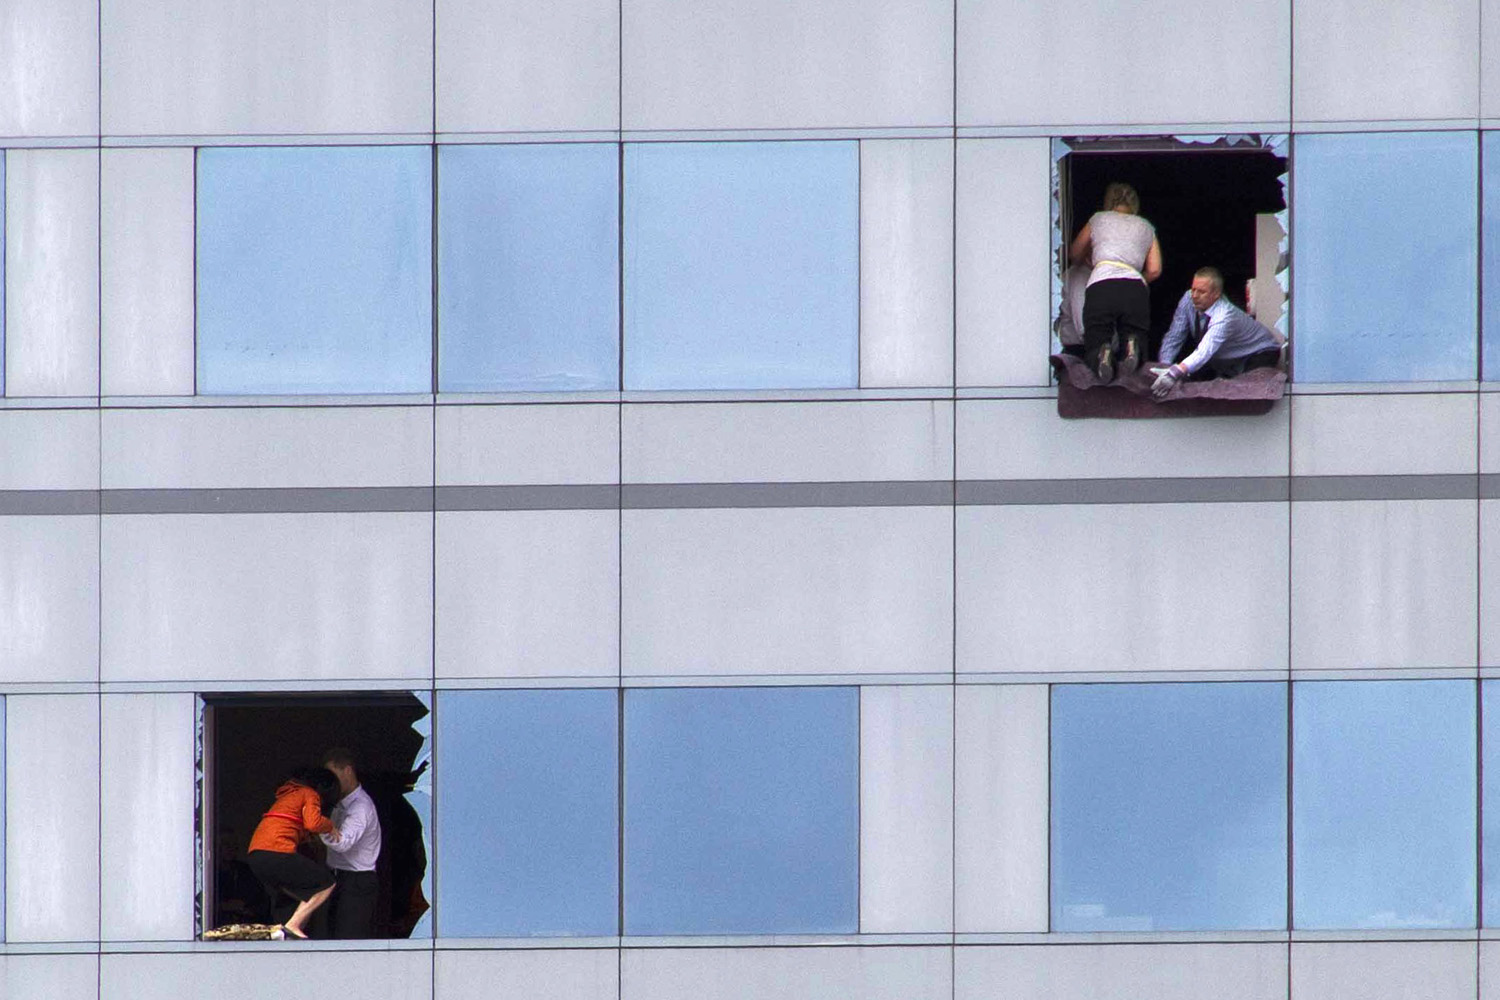 February 22, 2011. Office workers look for a way out of a high-rise building in central Christchurch. A strong earthquake killed at least 65 people in New Zealand's second-biggest city in February.